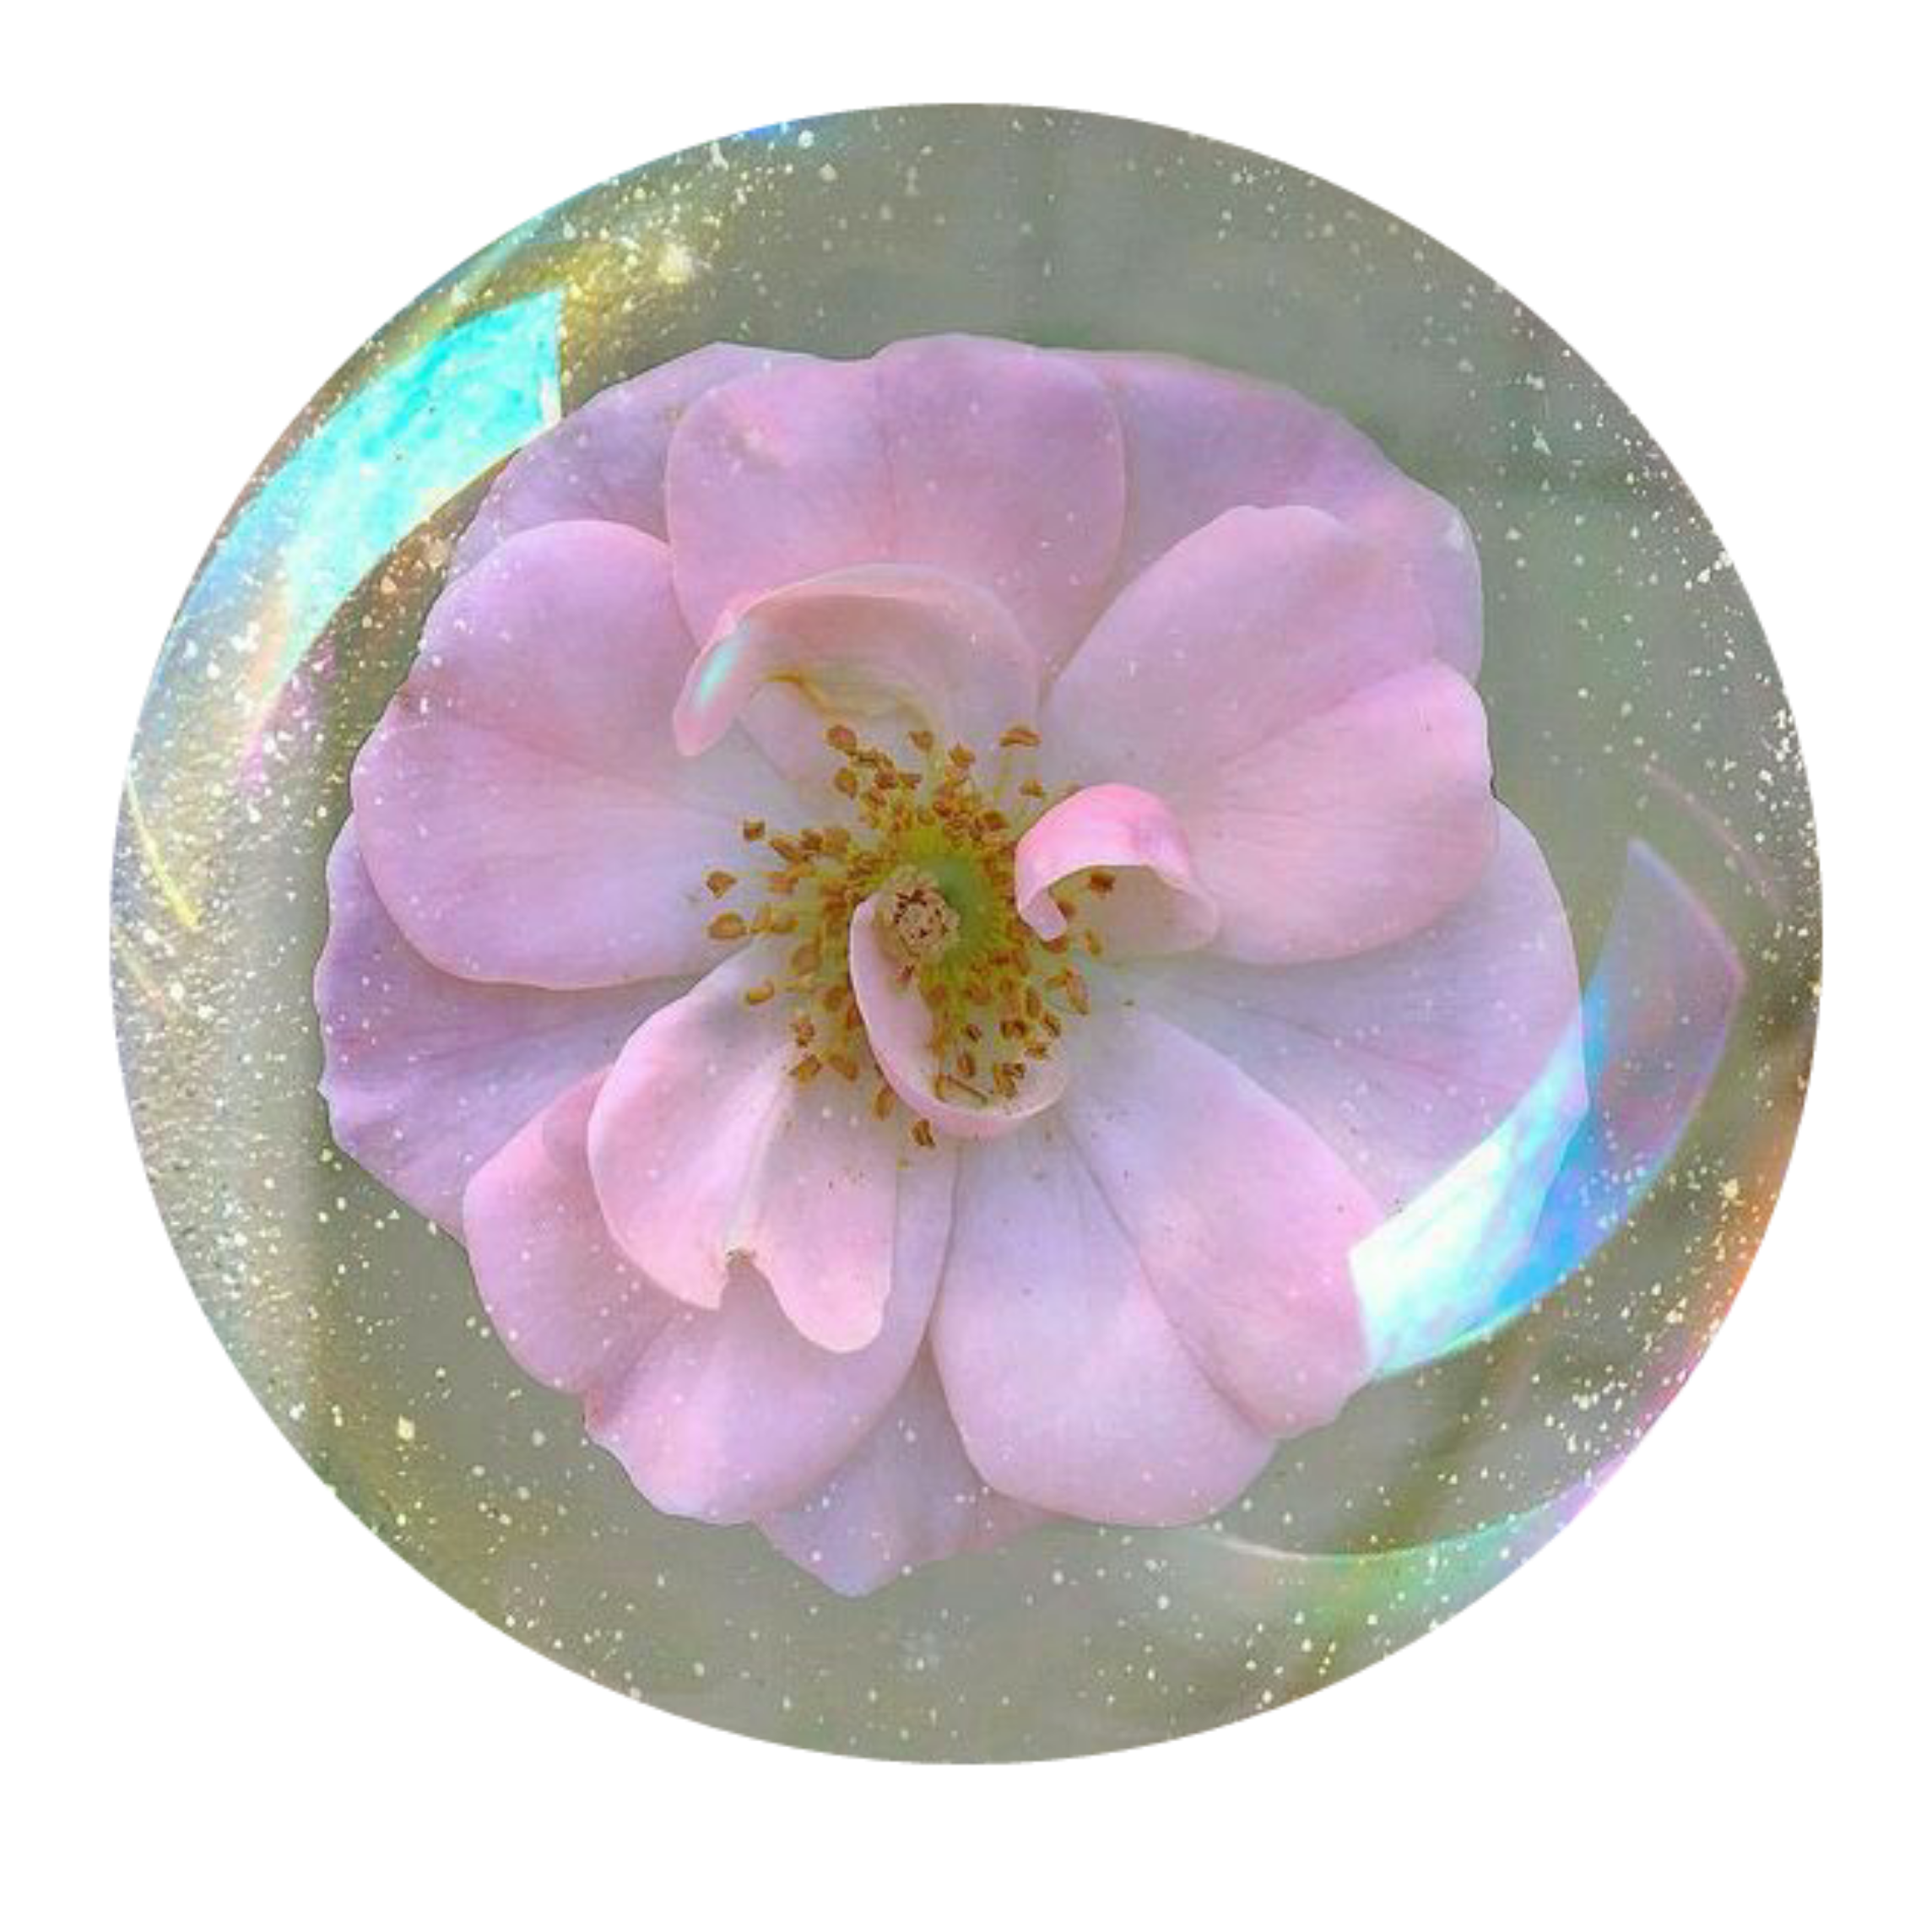 Aesthetic Tumblr Flower Icon Iconbase Pink Sticker